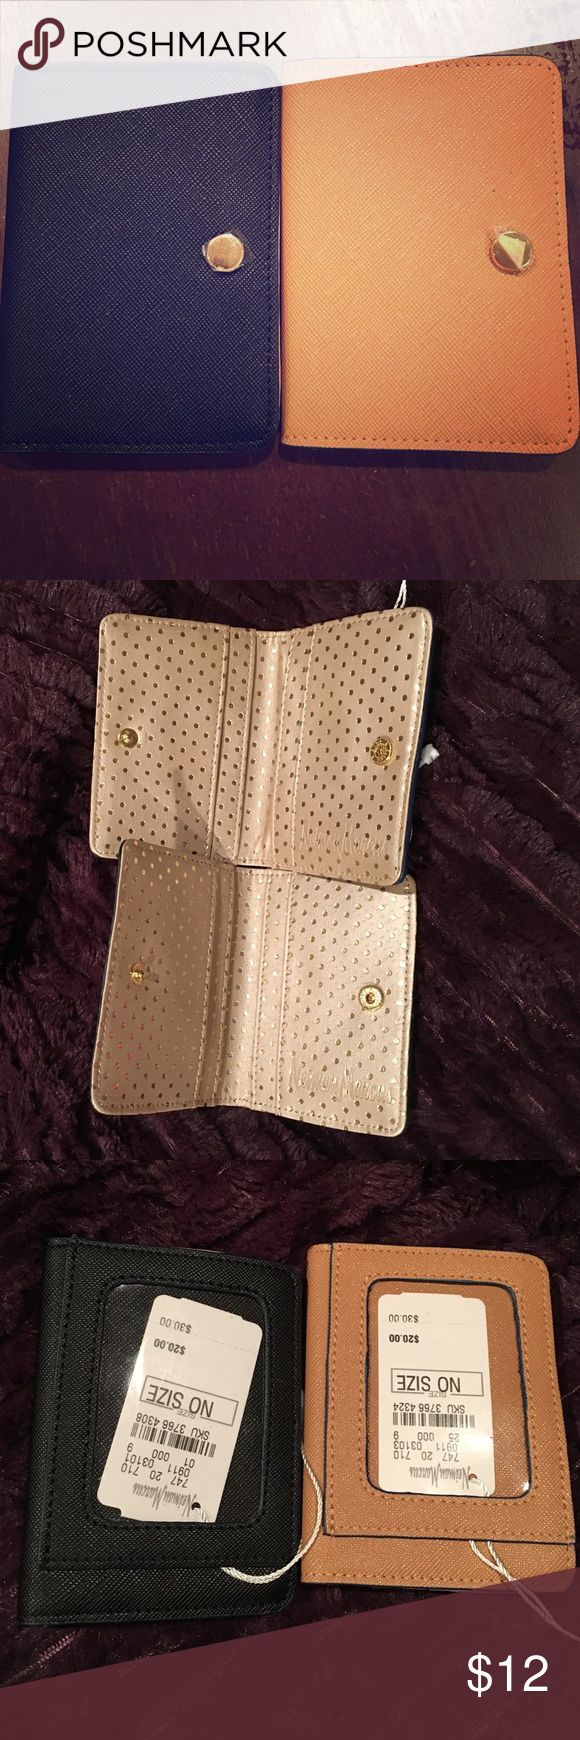 Neiman Marcus Credit Card Holder Wallet NWT leather card holder/ mini wallet. Snap button closure. 4 card slots interior, one slot exterior. gold metallic polka dot pattern interior. *Two colors* one black, one light brown! PLEASE SPECIFY WHICH ONE YOU WANT ✨ Neiman Marcus Accessories Key & Card Holders